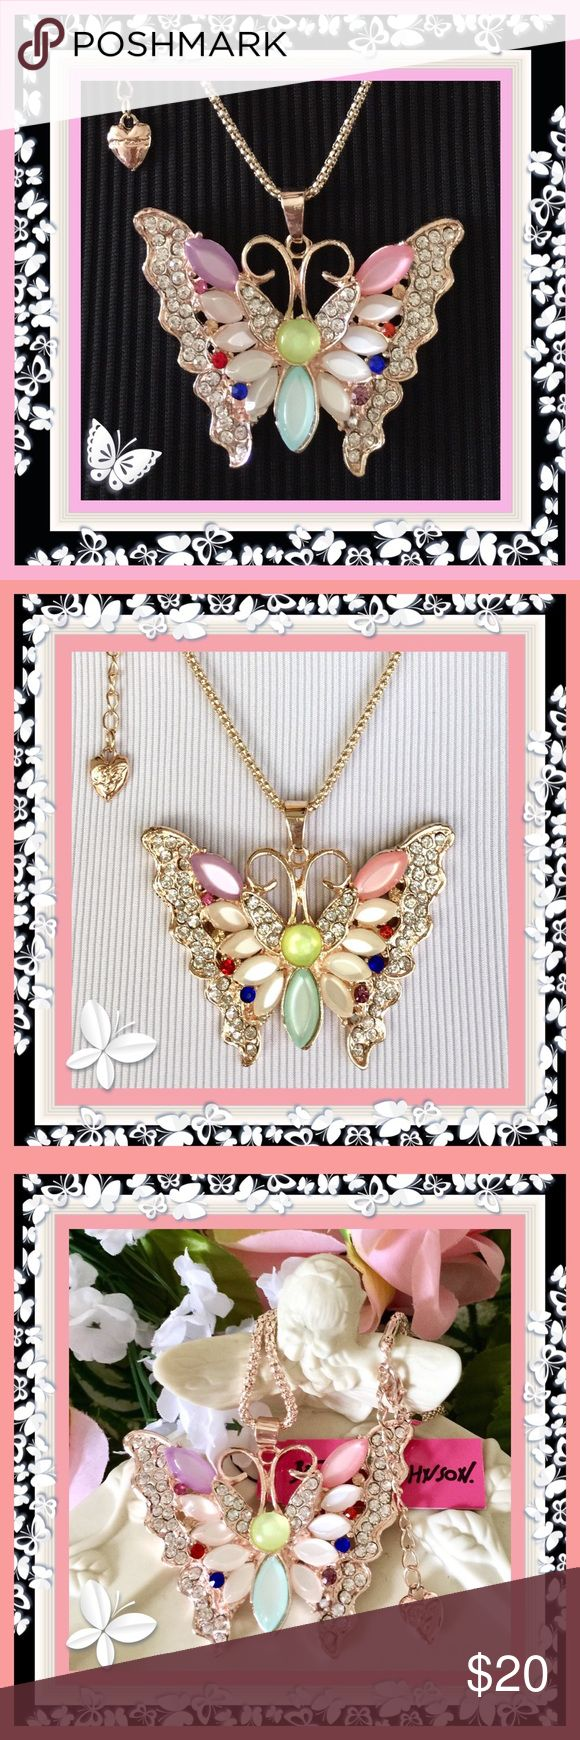 "🌺🌴🌺 BETSEY JOHNSON BUTTERFLY PENDANT 🌺🌴🌺 🌺🌴🌺 On the wings of a butterfly should be the name of this pendant.  The colors are like freshly picked flowers from an English garden.  The exquisite pearl like pastel oval inserts amidst multiple clear and deeper shades of rhinestones off set the lighter shades in this winged beauty.  This could be the perfect gift 🎁 for that perfect someone.  The pendant is:  2 1/2"" wide x 2"" high.  The rolled gold chain is:  28"" with a 2"" extension…"